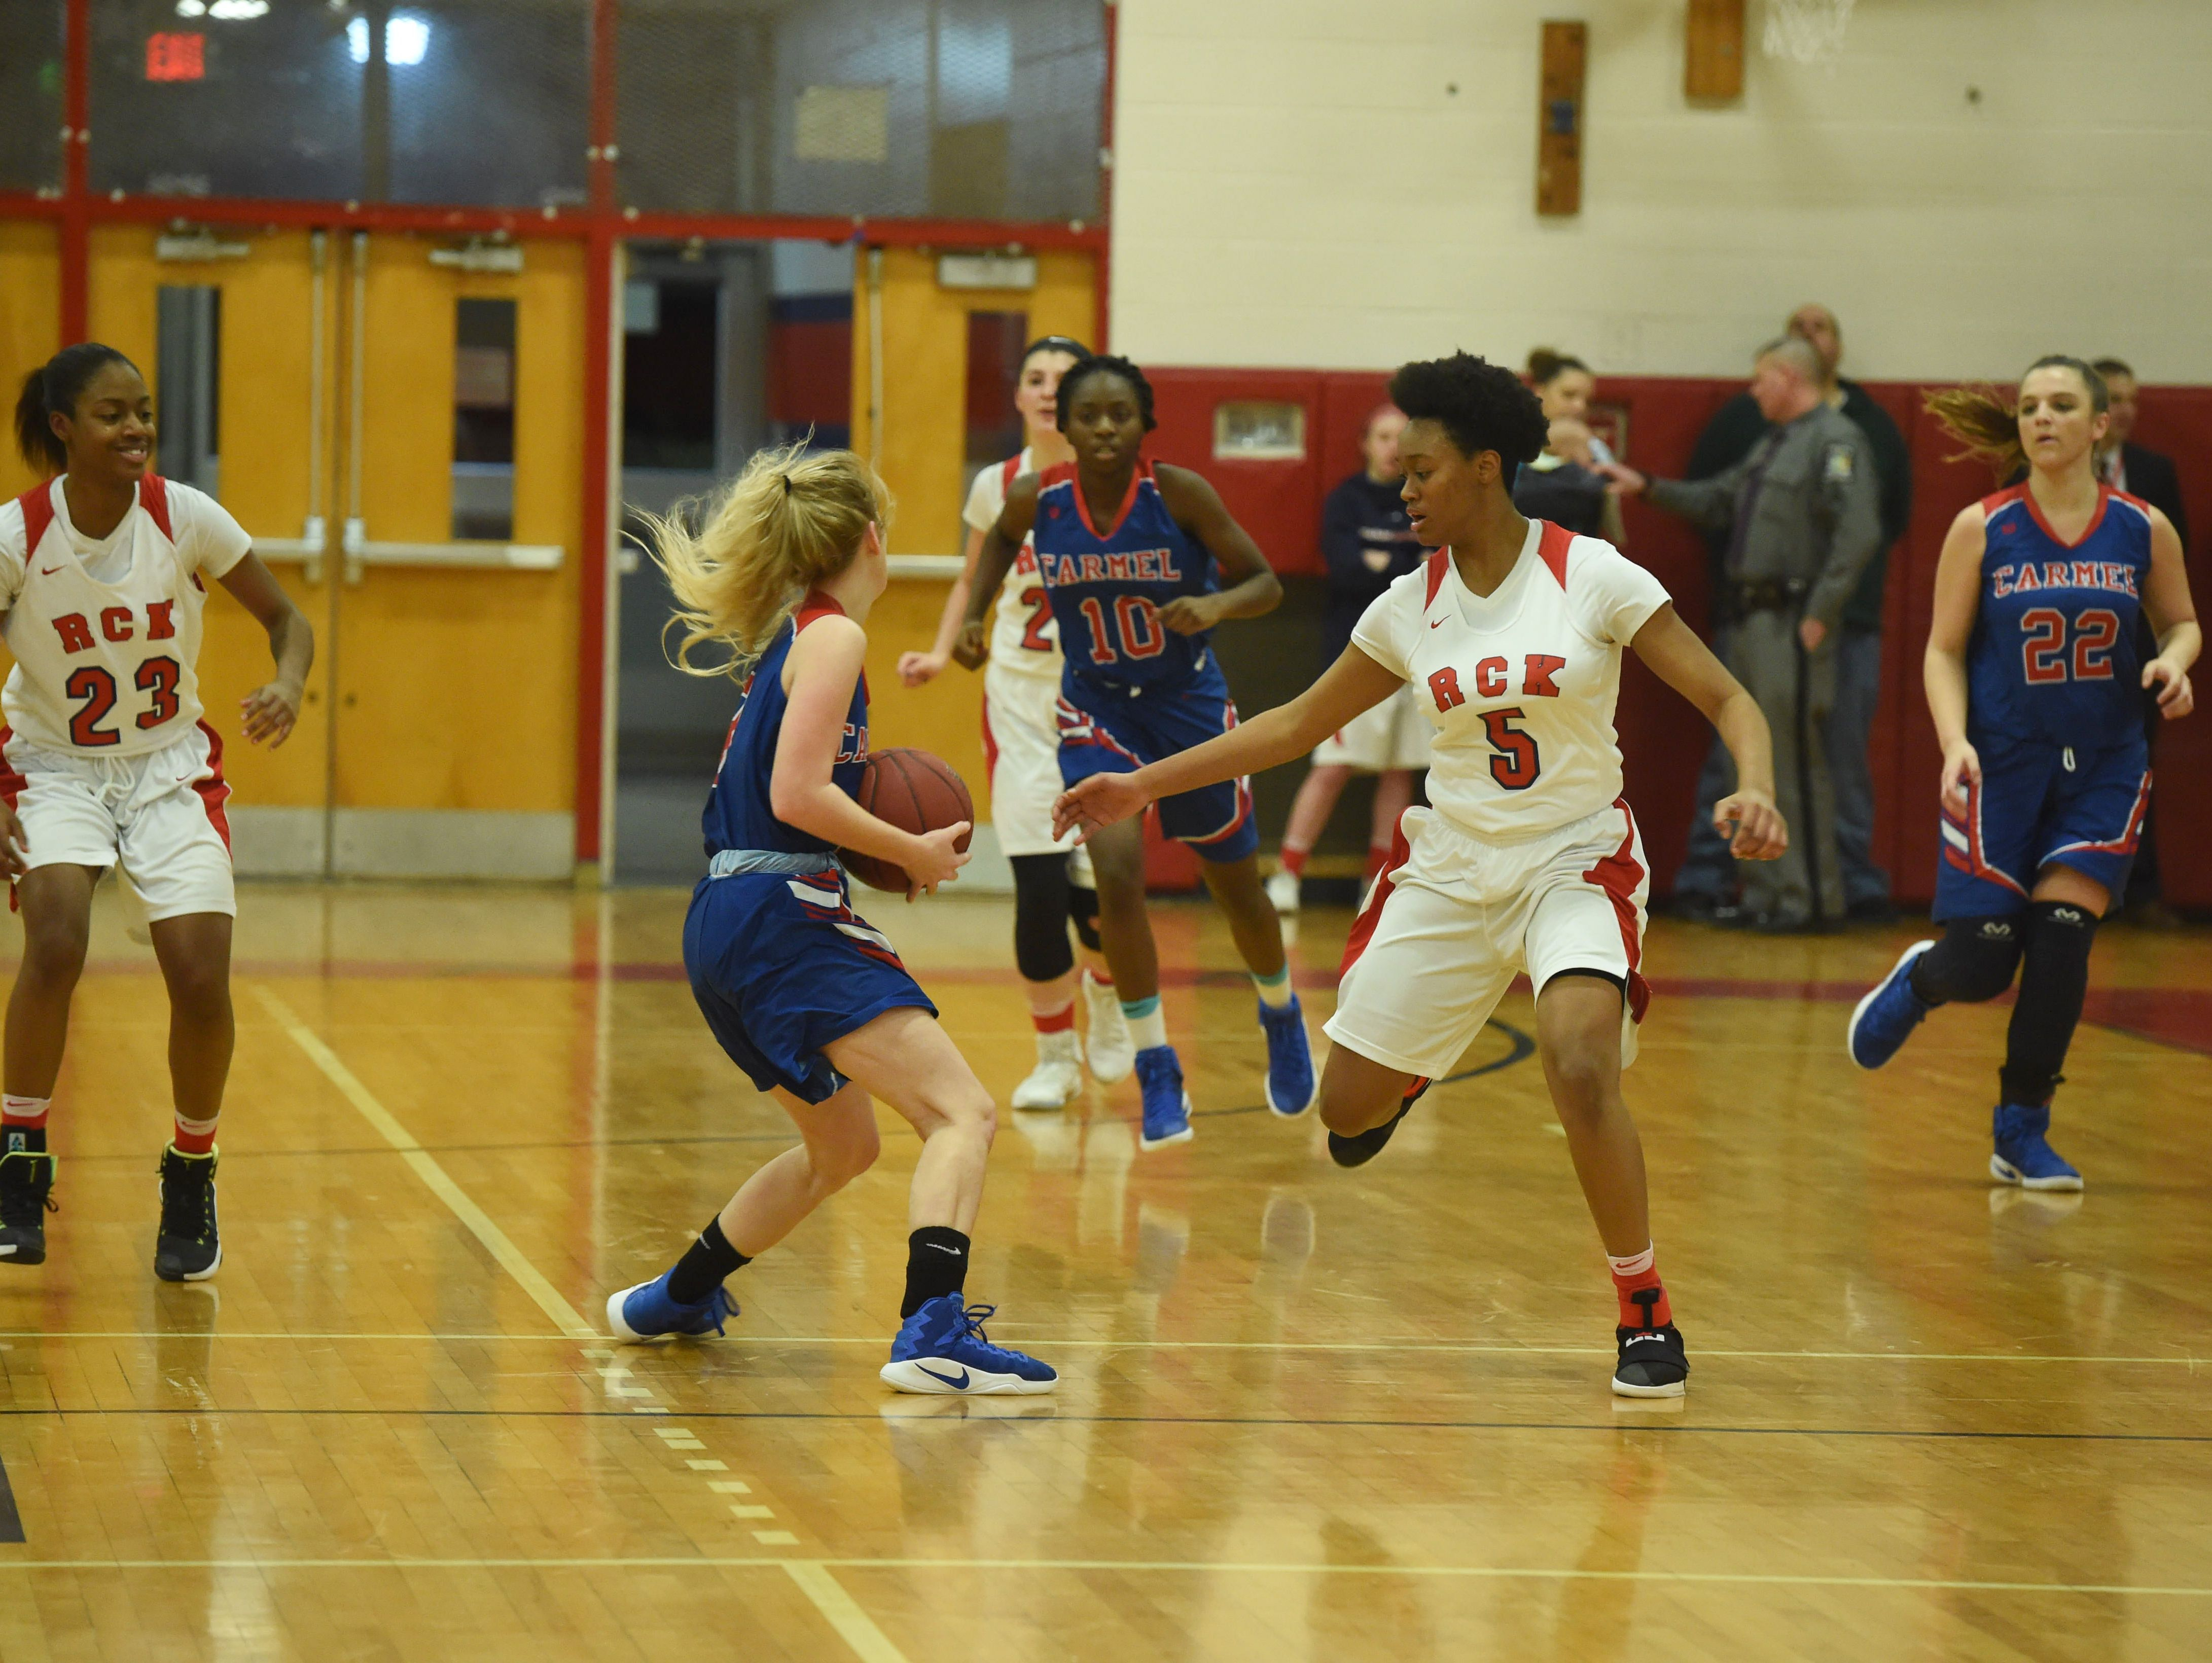 Ketcham's Jada Rencher, right, defends while Carmel's Kate Crawford, left, looks for an open teammate during Wednesday's game.